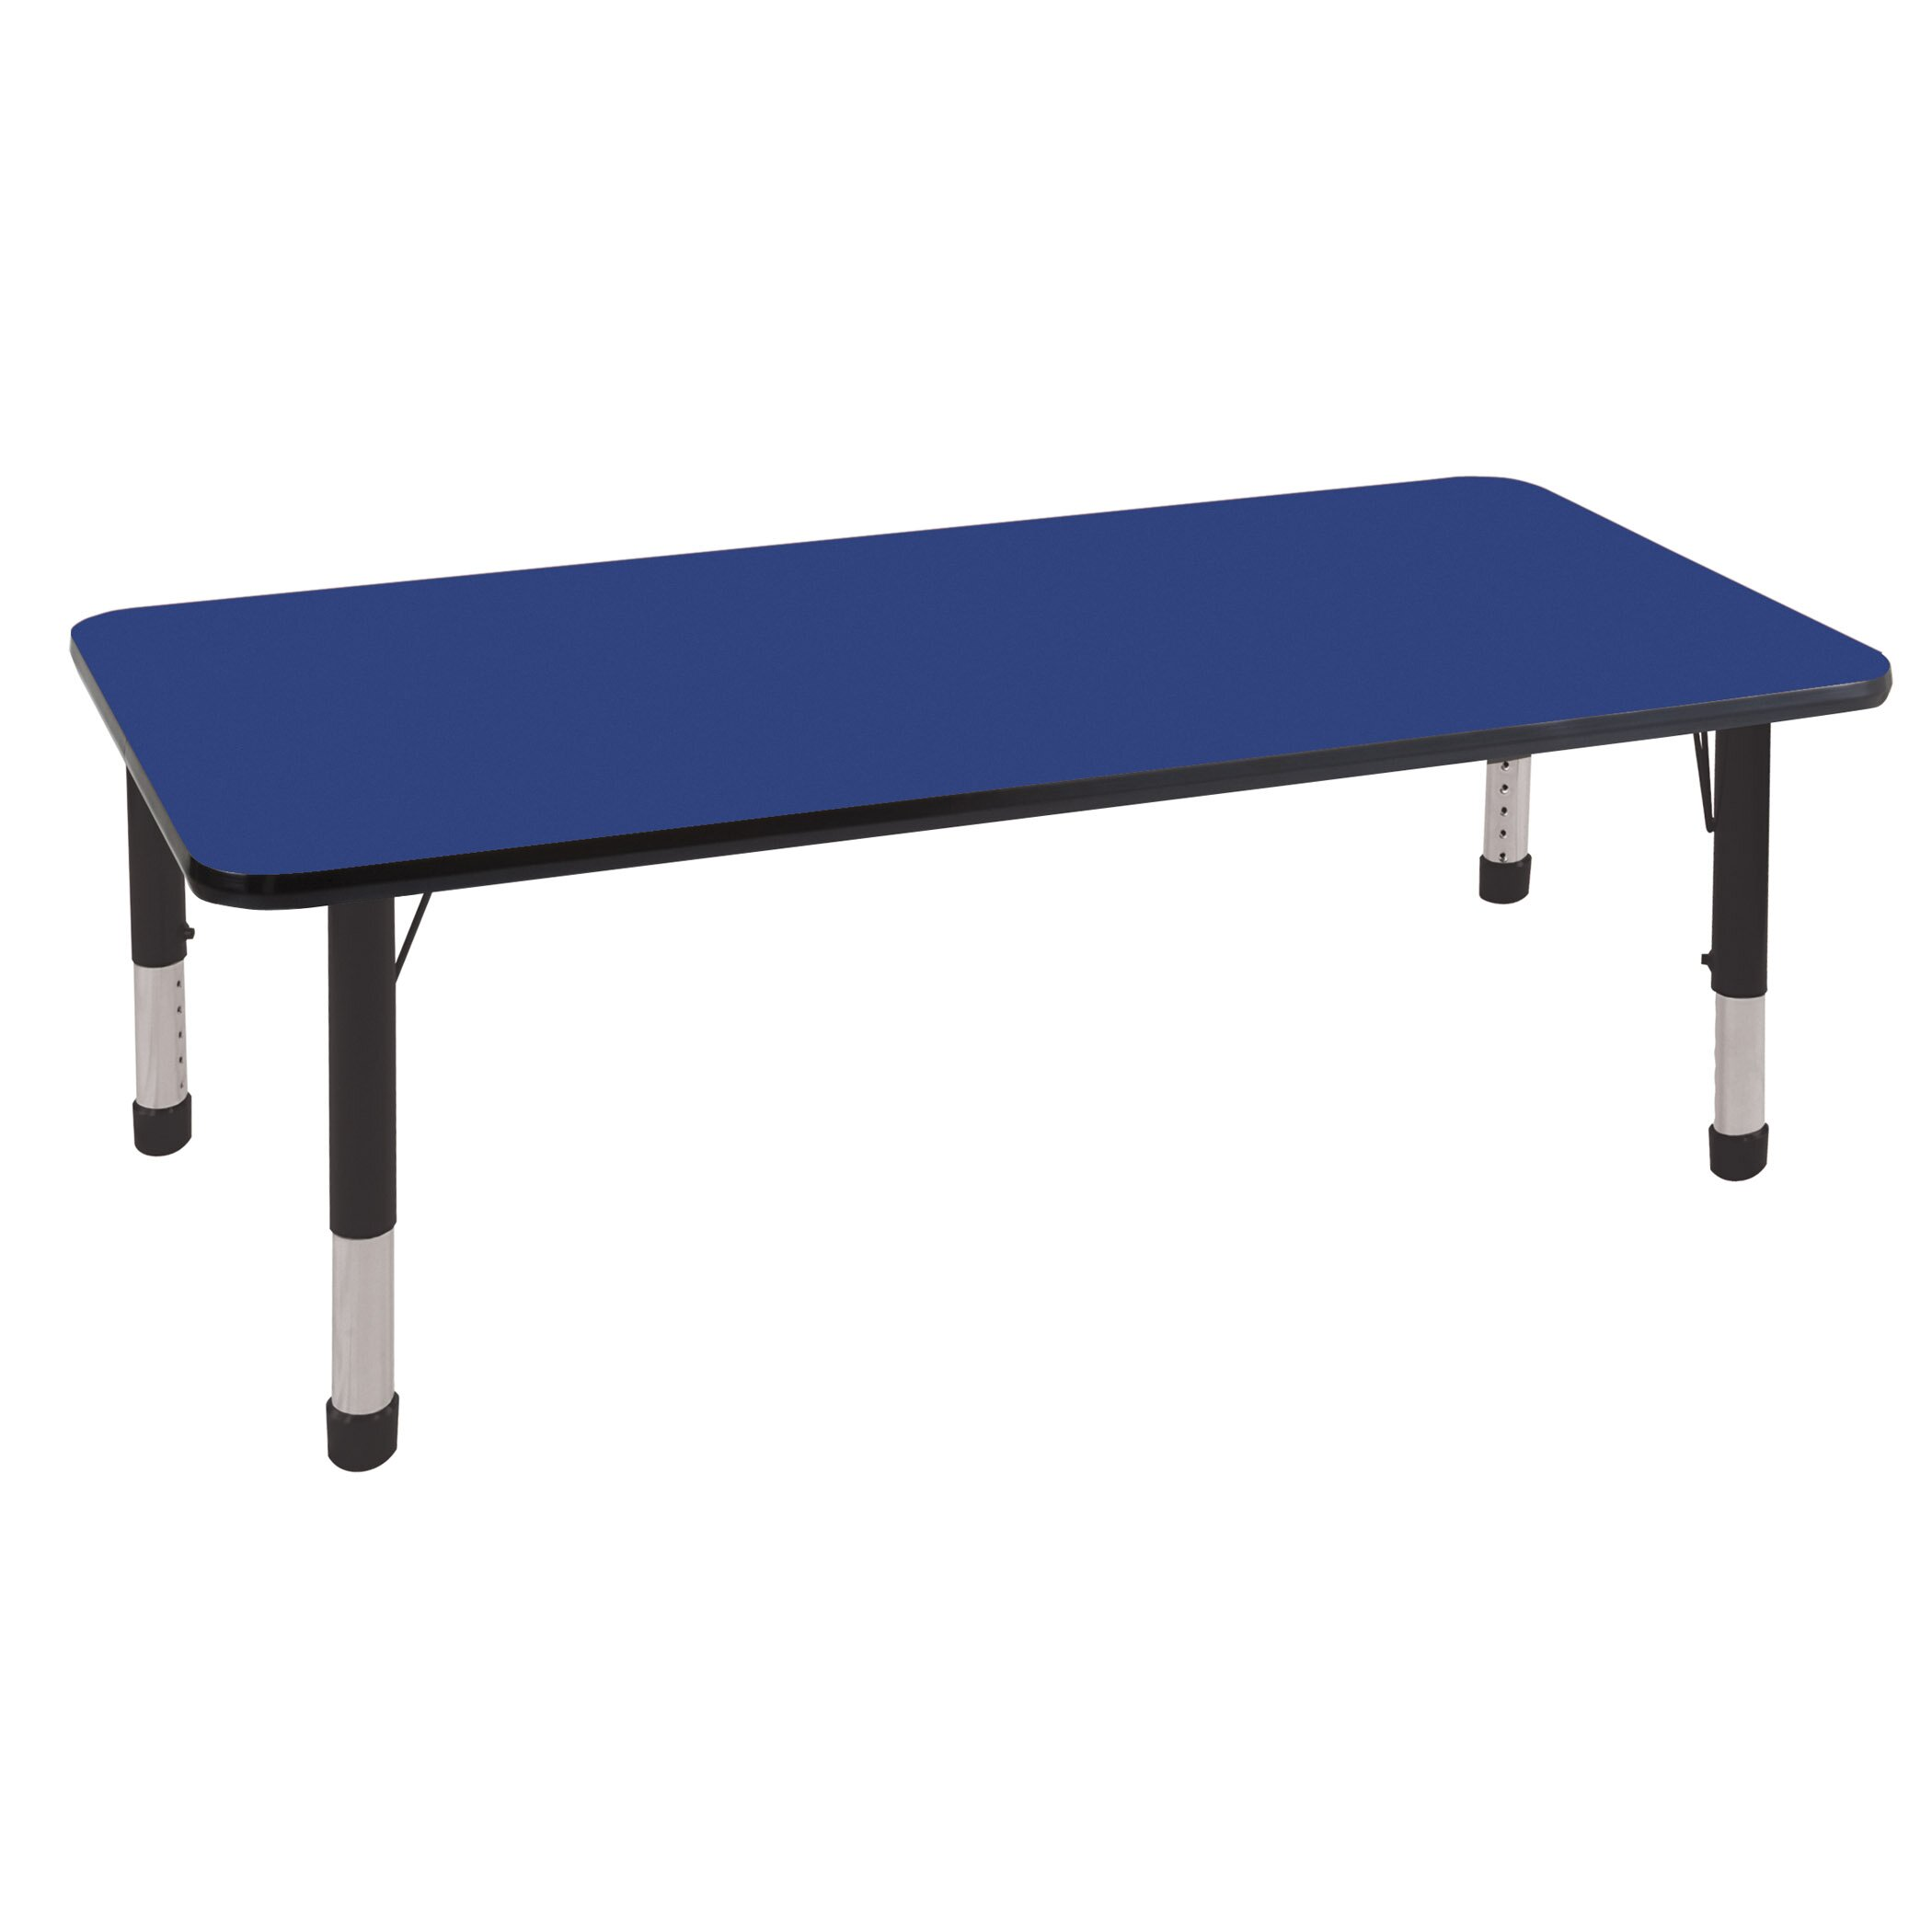 Ecr4kids rectangular activity table reviews wayfair supply for School furniture 4 less reviews